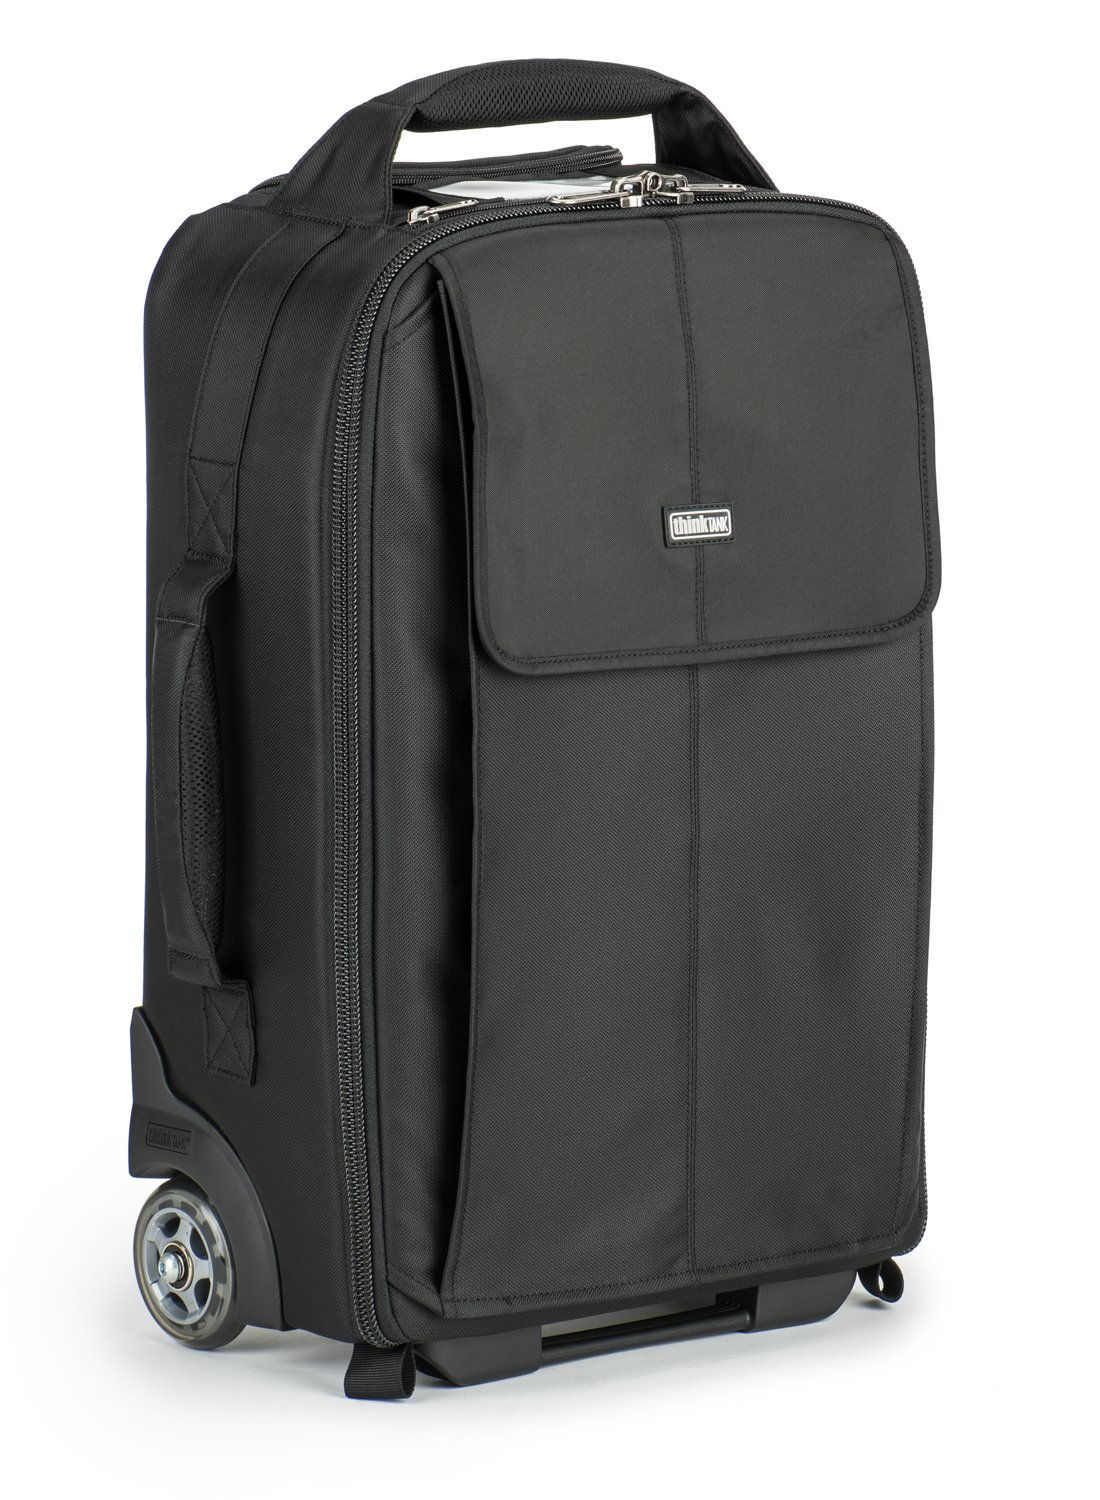 Think Tank Airport Advantage Carry-On Roller Bag for 2 DSLRs with Lenses Attached, 15'' Laptop